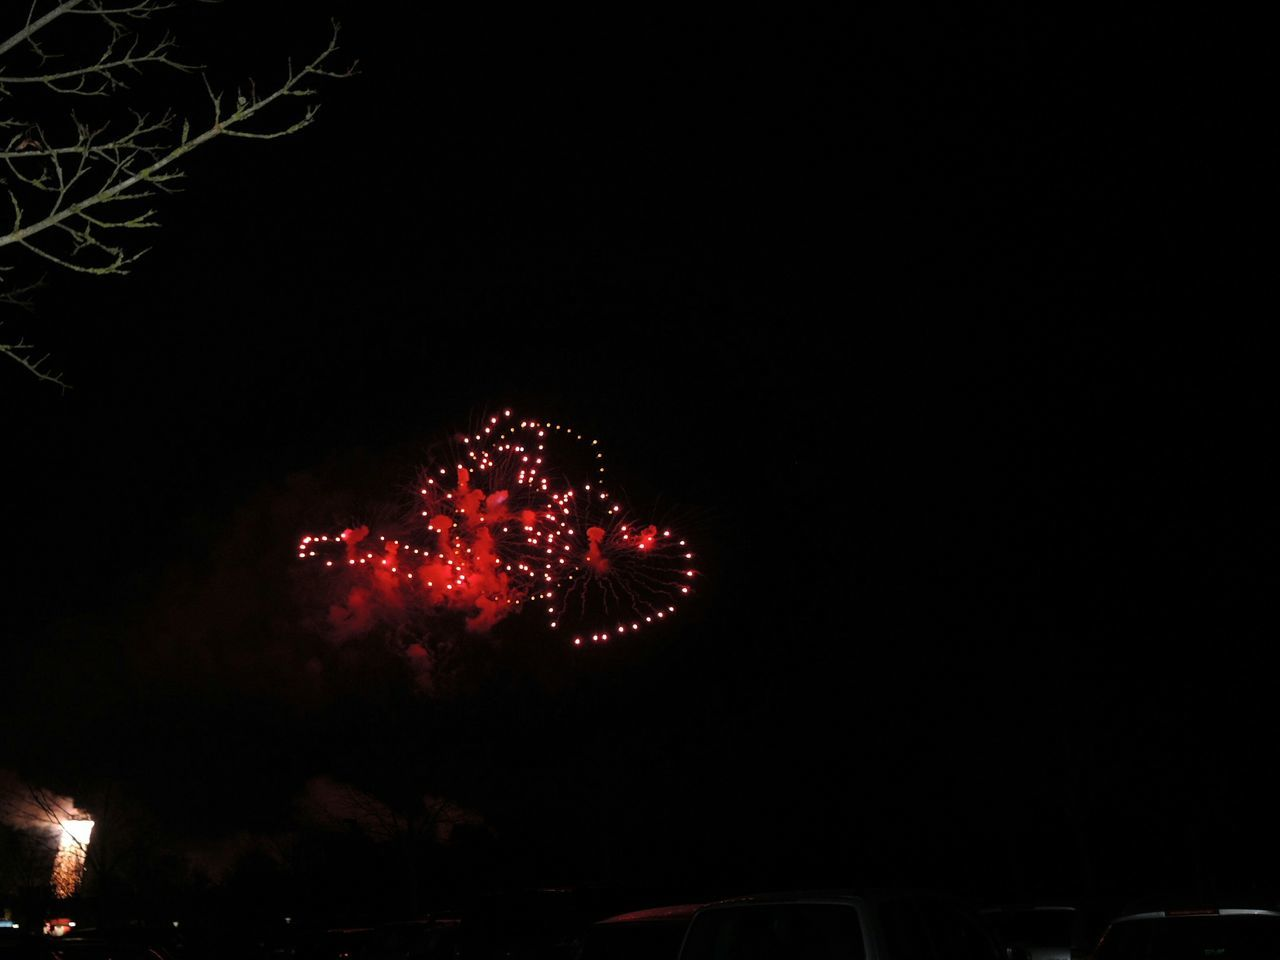 Red Illuminated Tree Fireworks Night Red Light Heart Heart ❤ Hearts♡hearts Hearts Mode Of Transport Land Vehicle Car No People Christmas Decoration Outdoors